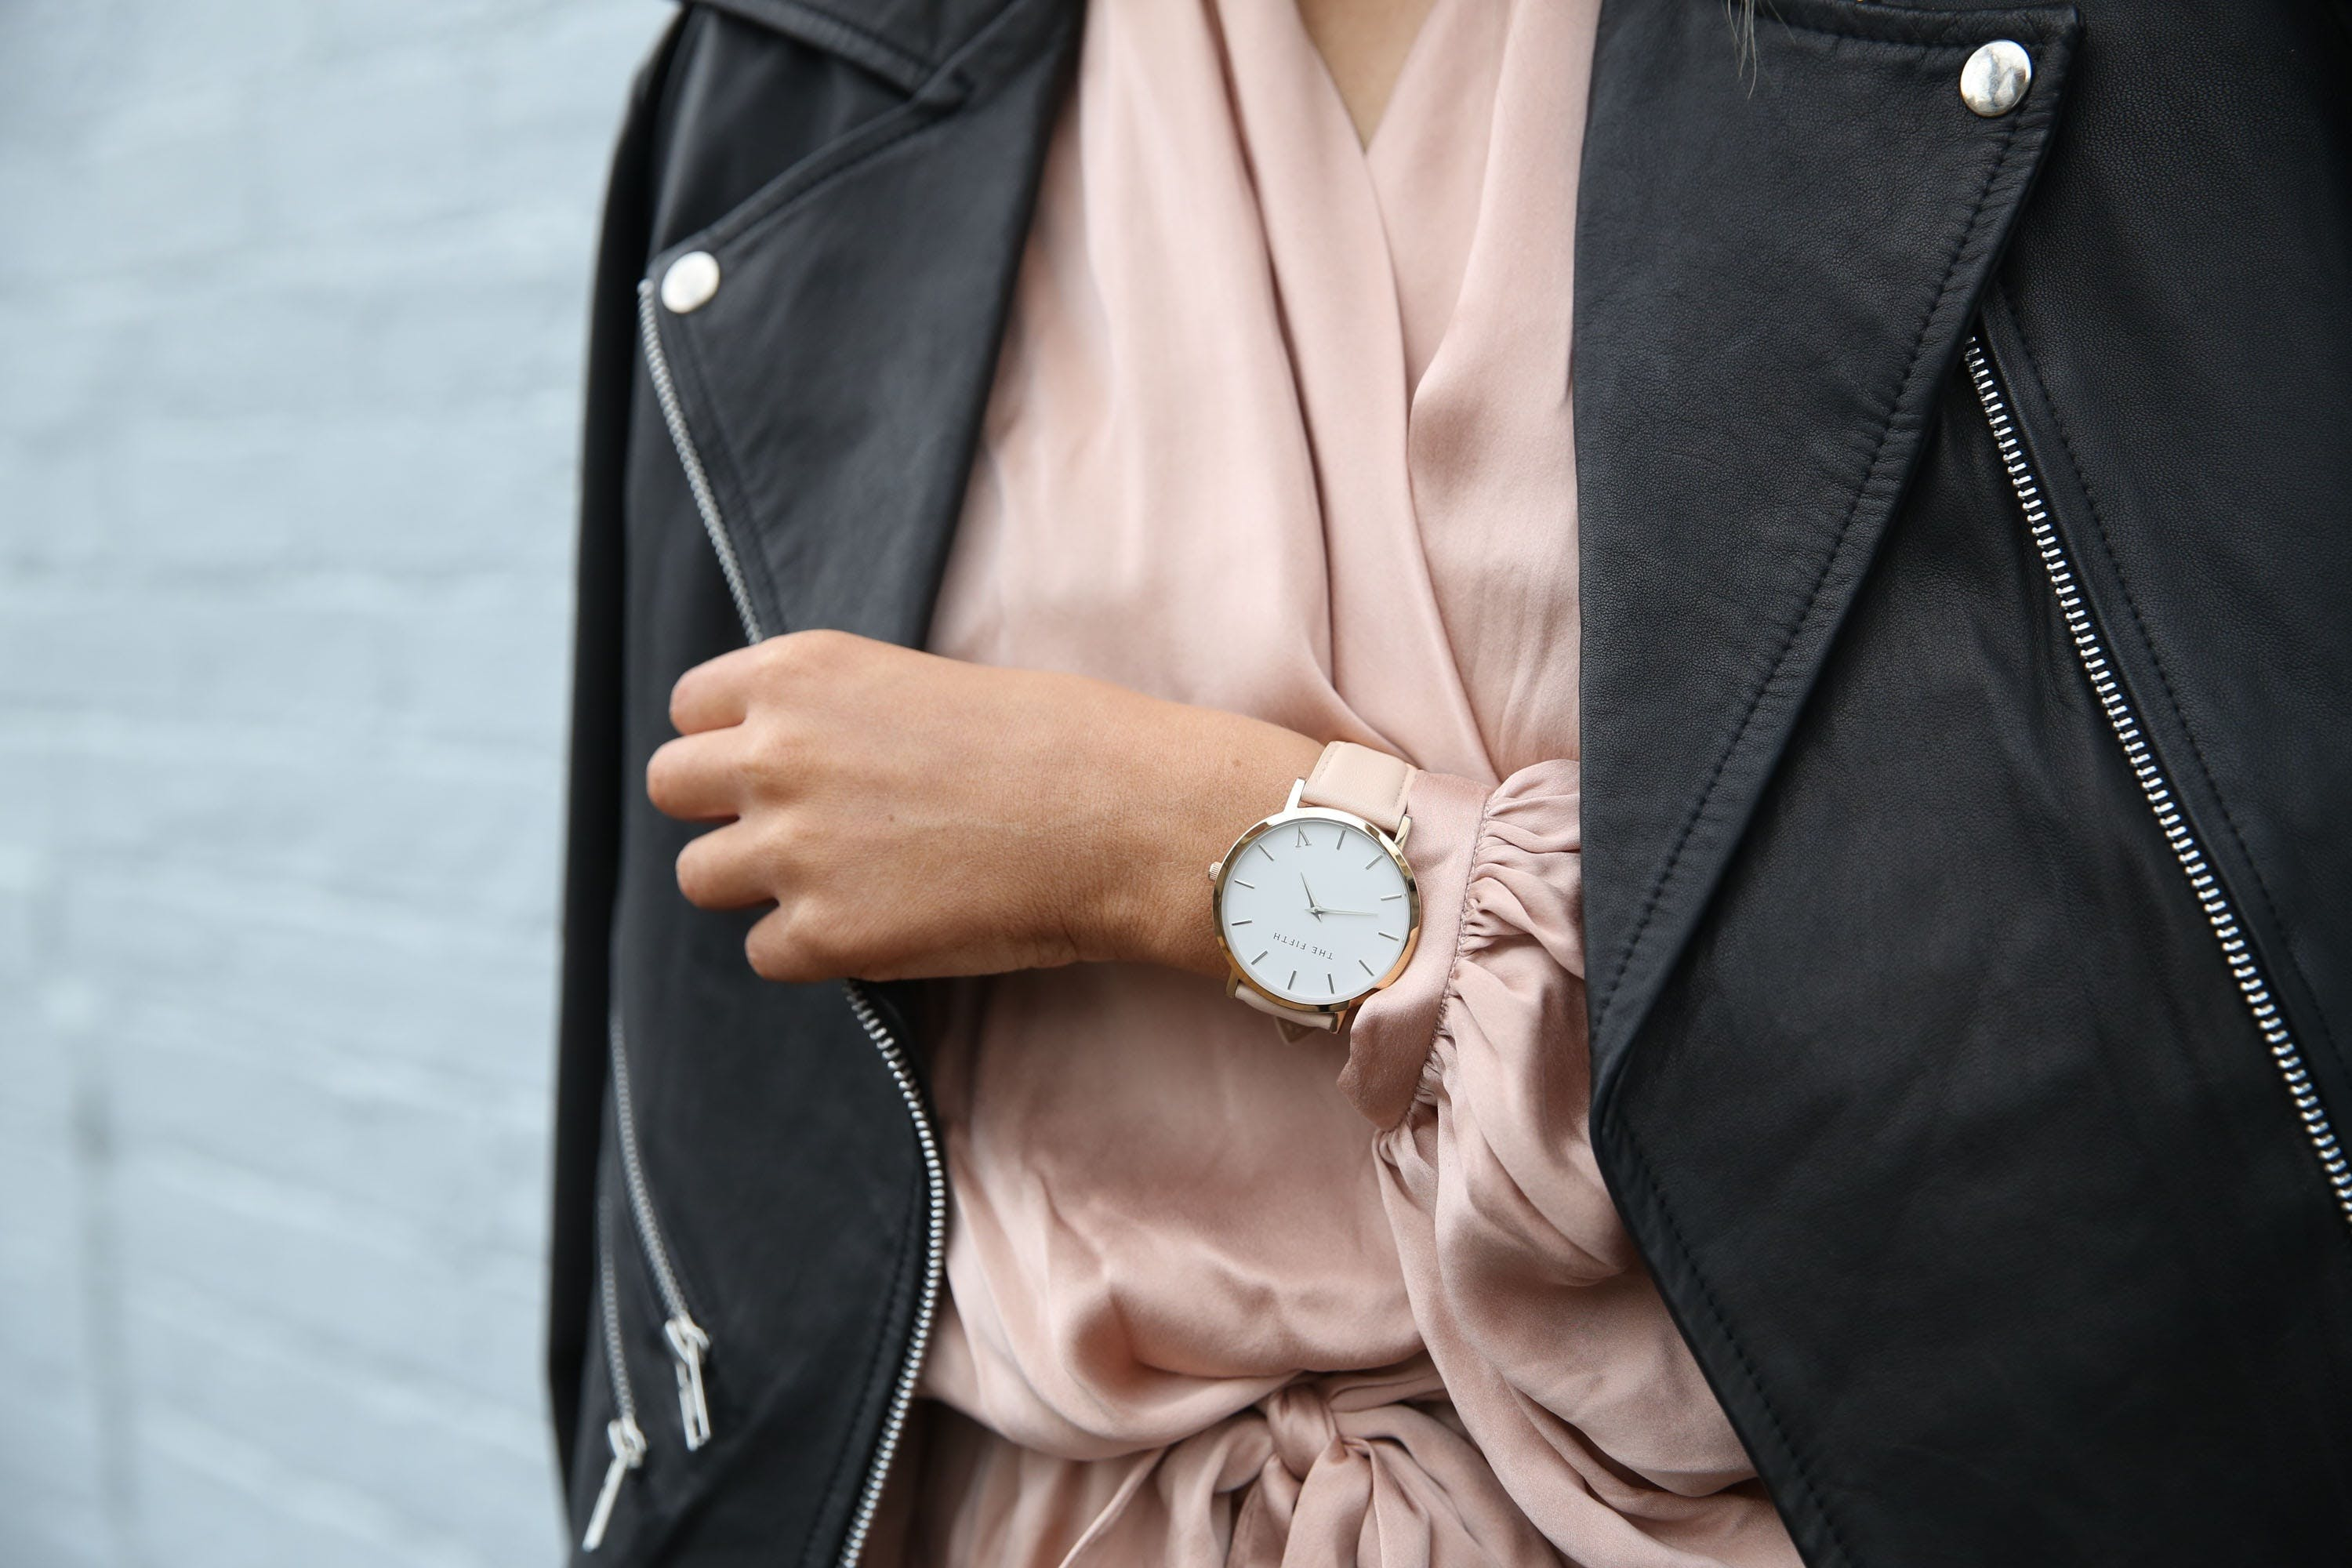 Free stock photo of fashion, woman, hand, wristwatch